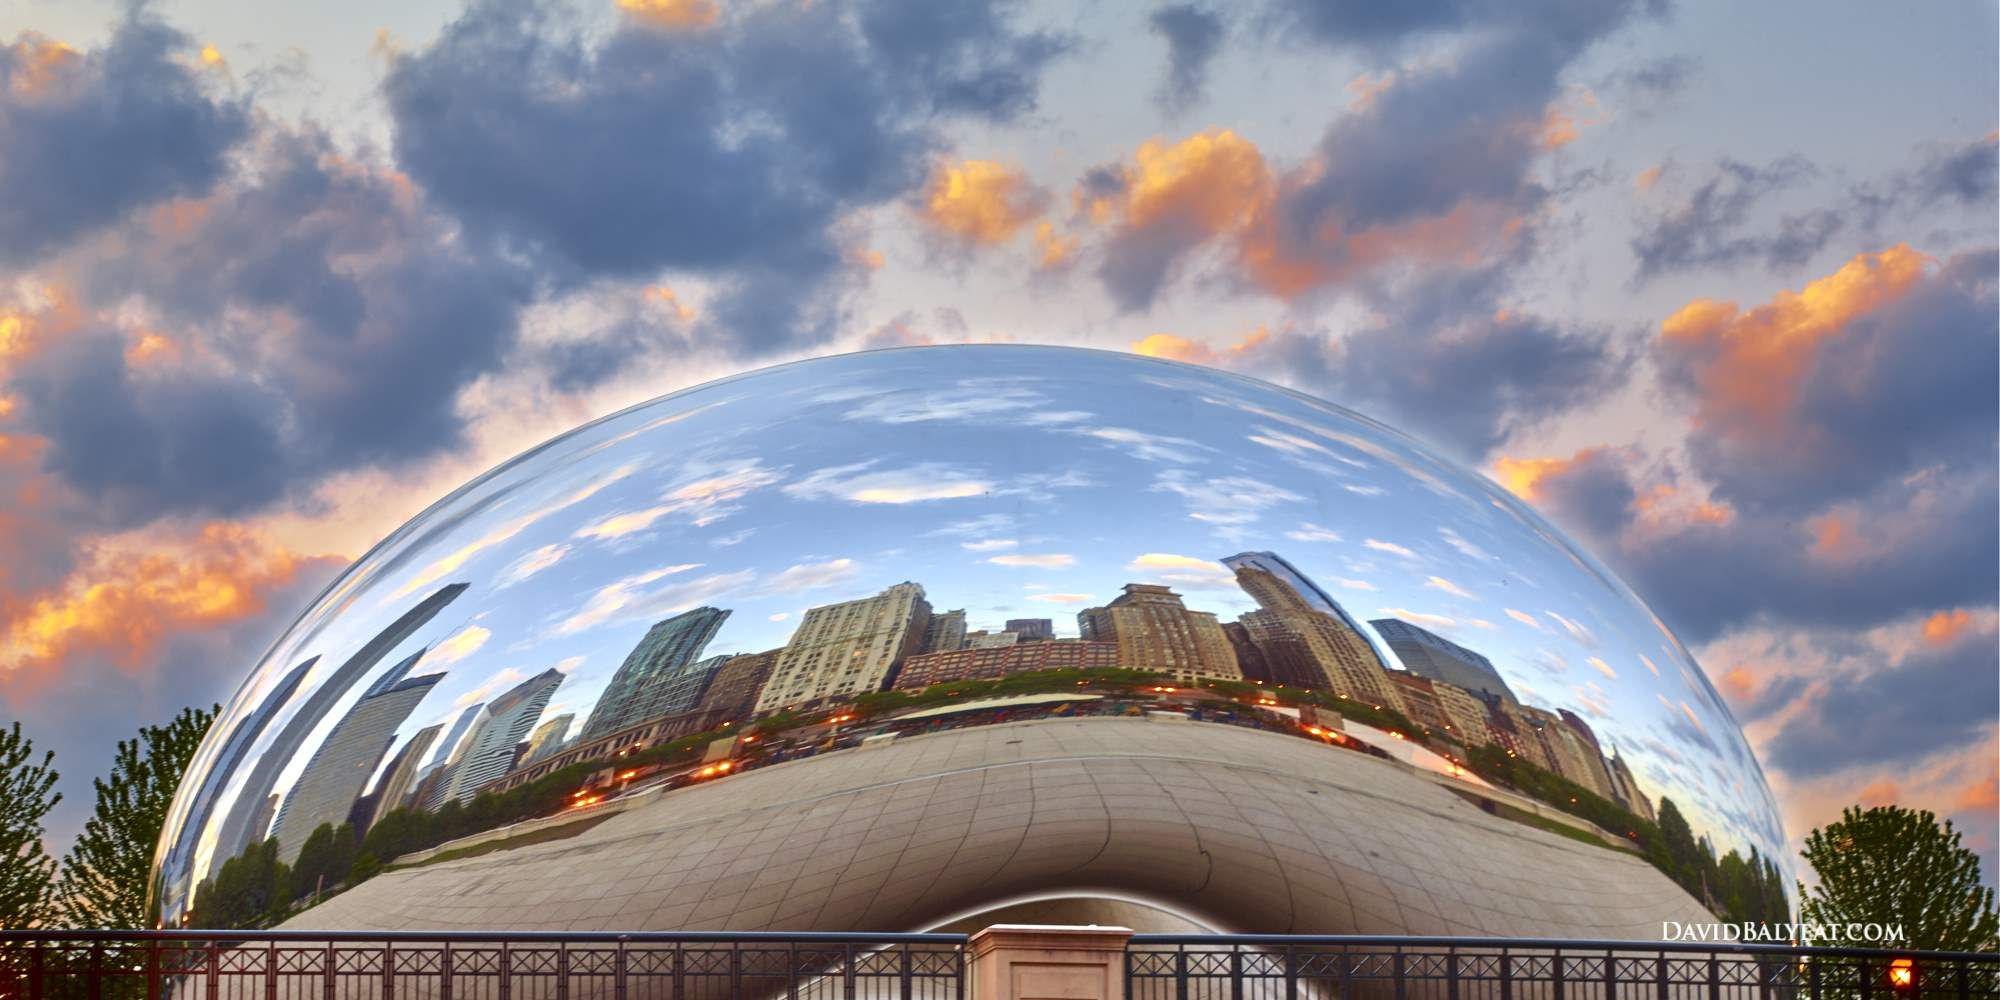 Chicago Cloud Gate Bean Millenium Park high-definition HD professional landscape photography